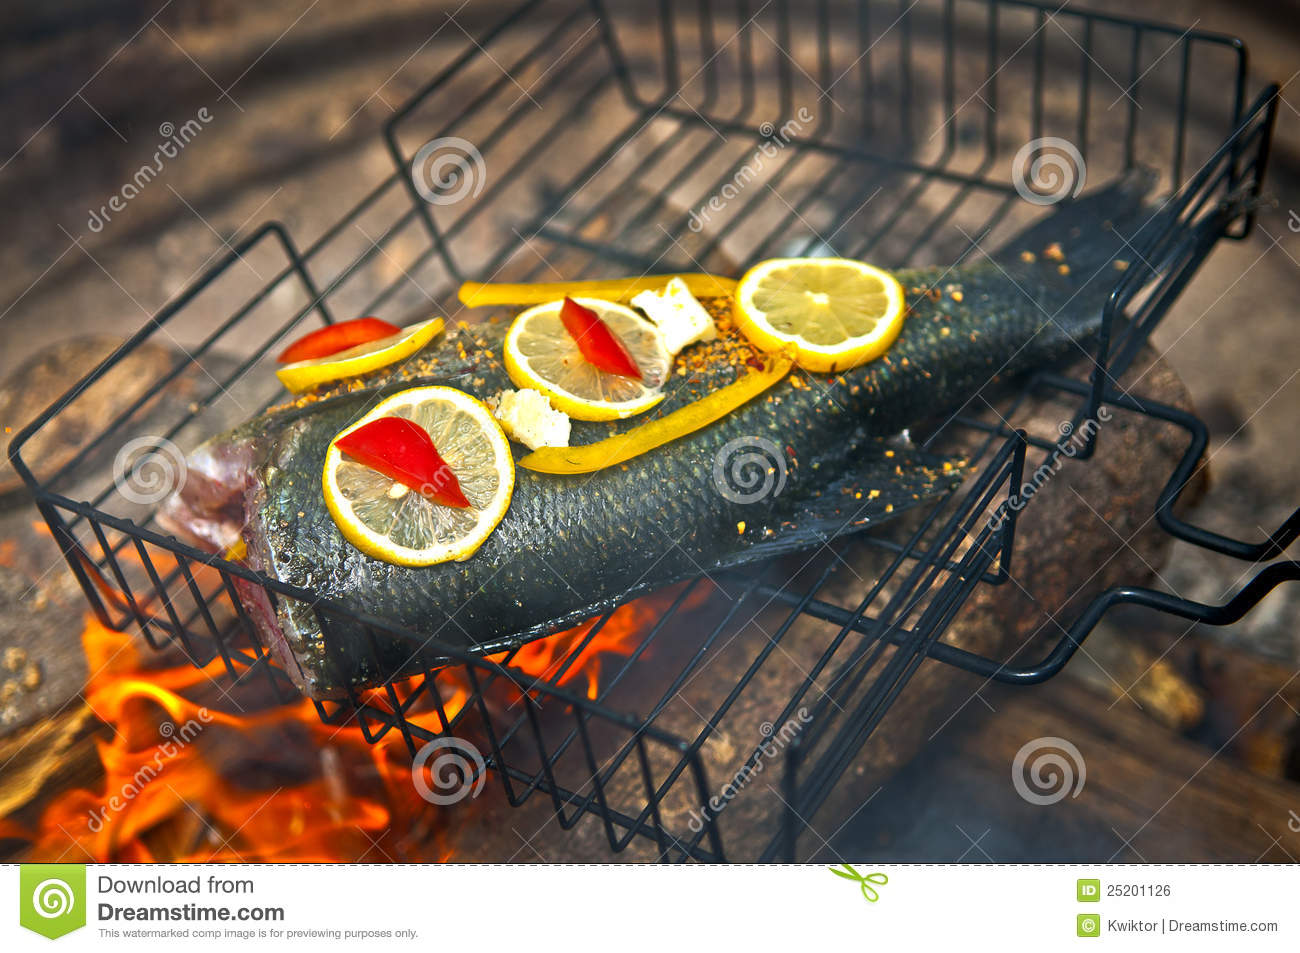 Cooking fish over open fire stock photo image 25201126 for Fish on fire